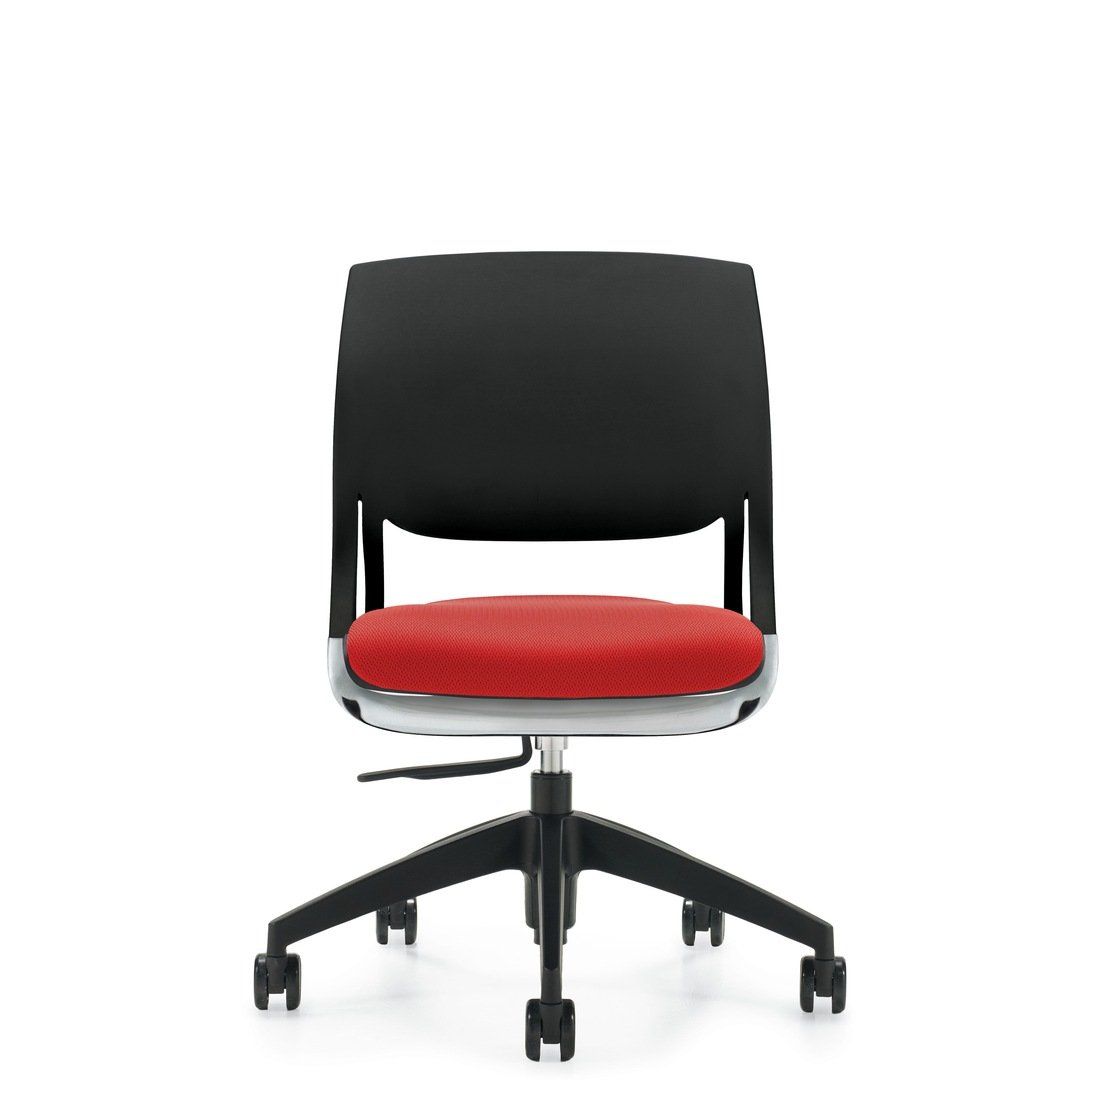 Novella armless task chair with upholstered seat and polypropylene back. The model 6401 chair has been placed on a white background.